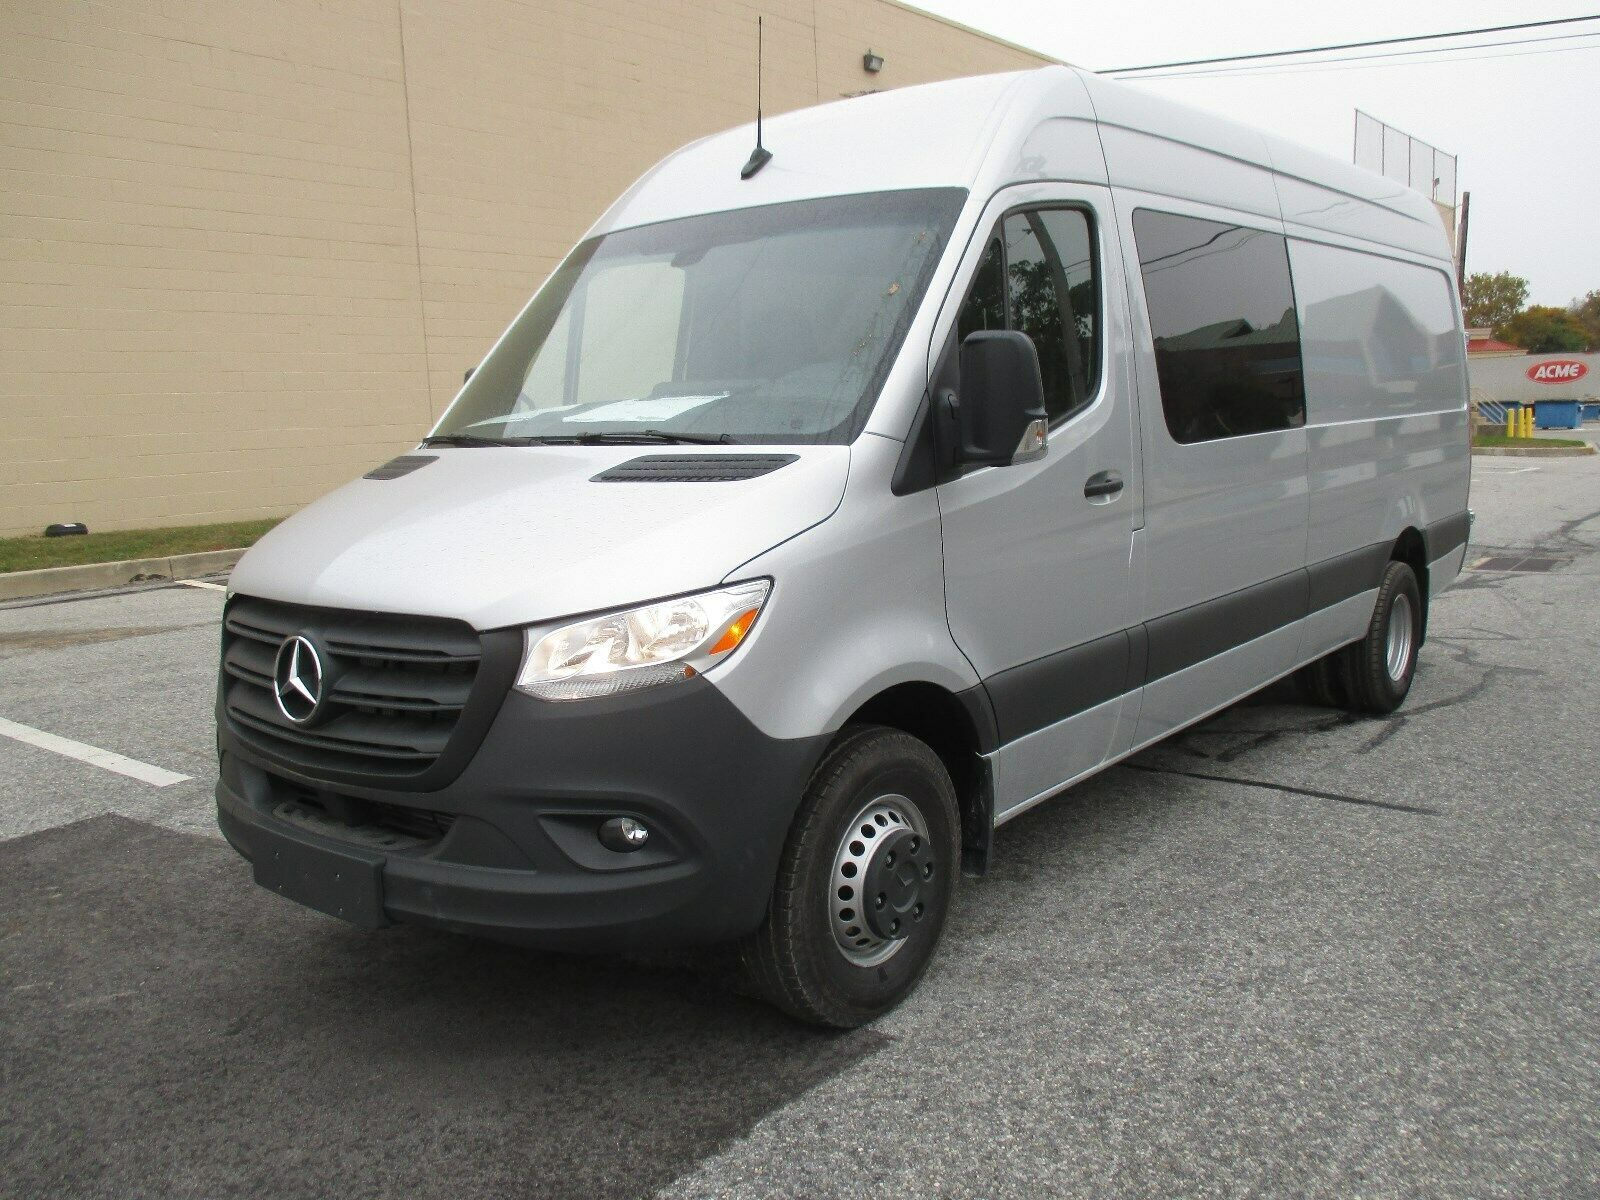 Used 2019 Mercedes Benz Sprinter Crew Van 4500 170 New 2019 Sprinter Crew Van 5 Passenger 4500 170 Wb Raised Roof 2020 In 2020 Benz Sprinter Mercedes Mercedes Benz